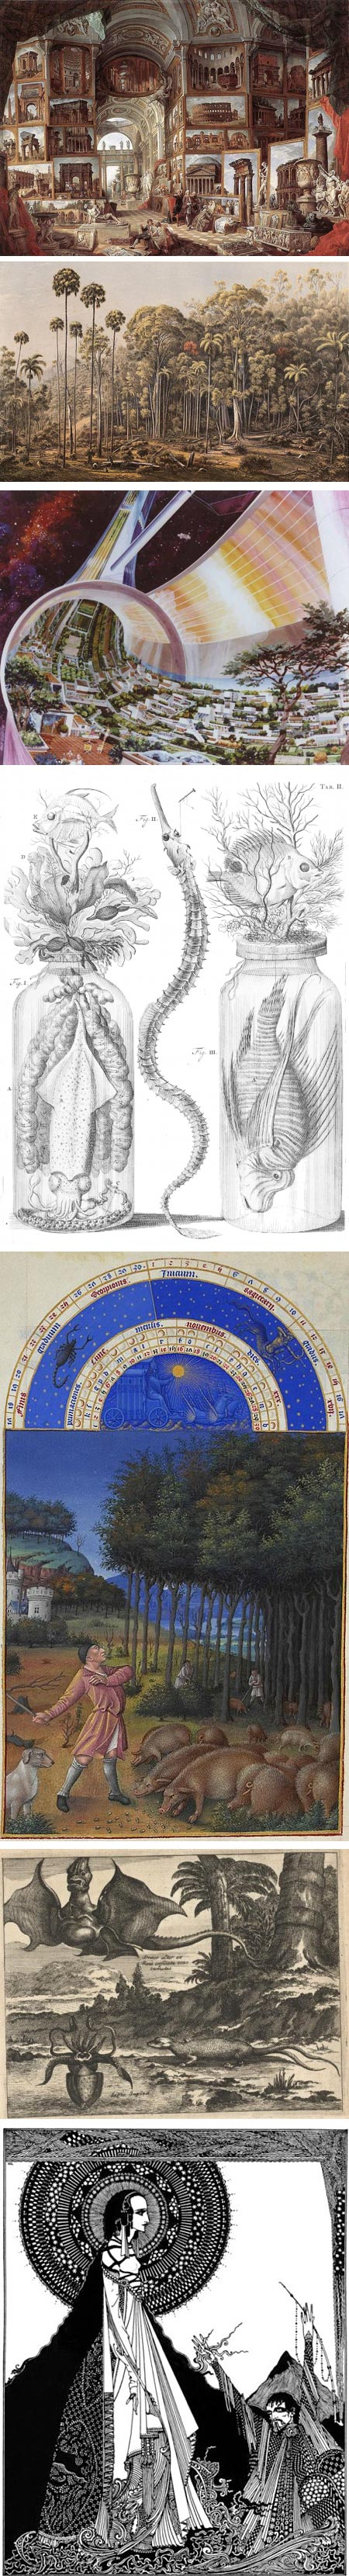 The Public Domain Review: Giovanni Paolo Pannini, Eugène von Guérard, Rick Guidice (NASA), from books by Frederik Ruysch (uncertain of artist), Limbourg brothers (for Très Riches Heures), Arnoldus Montanus, Harry Clarke